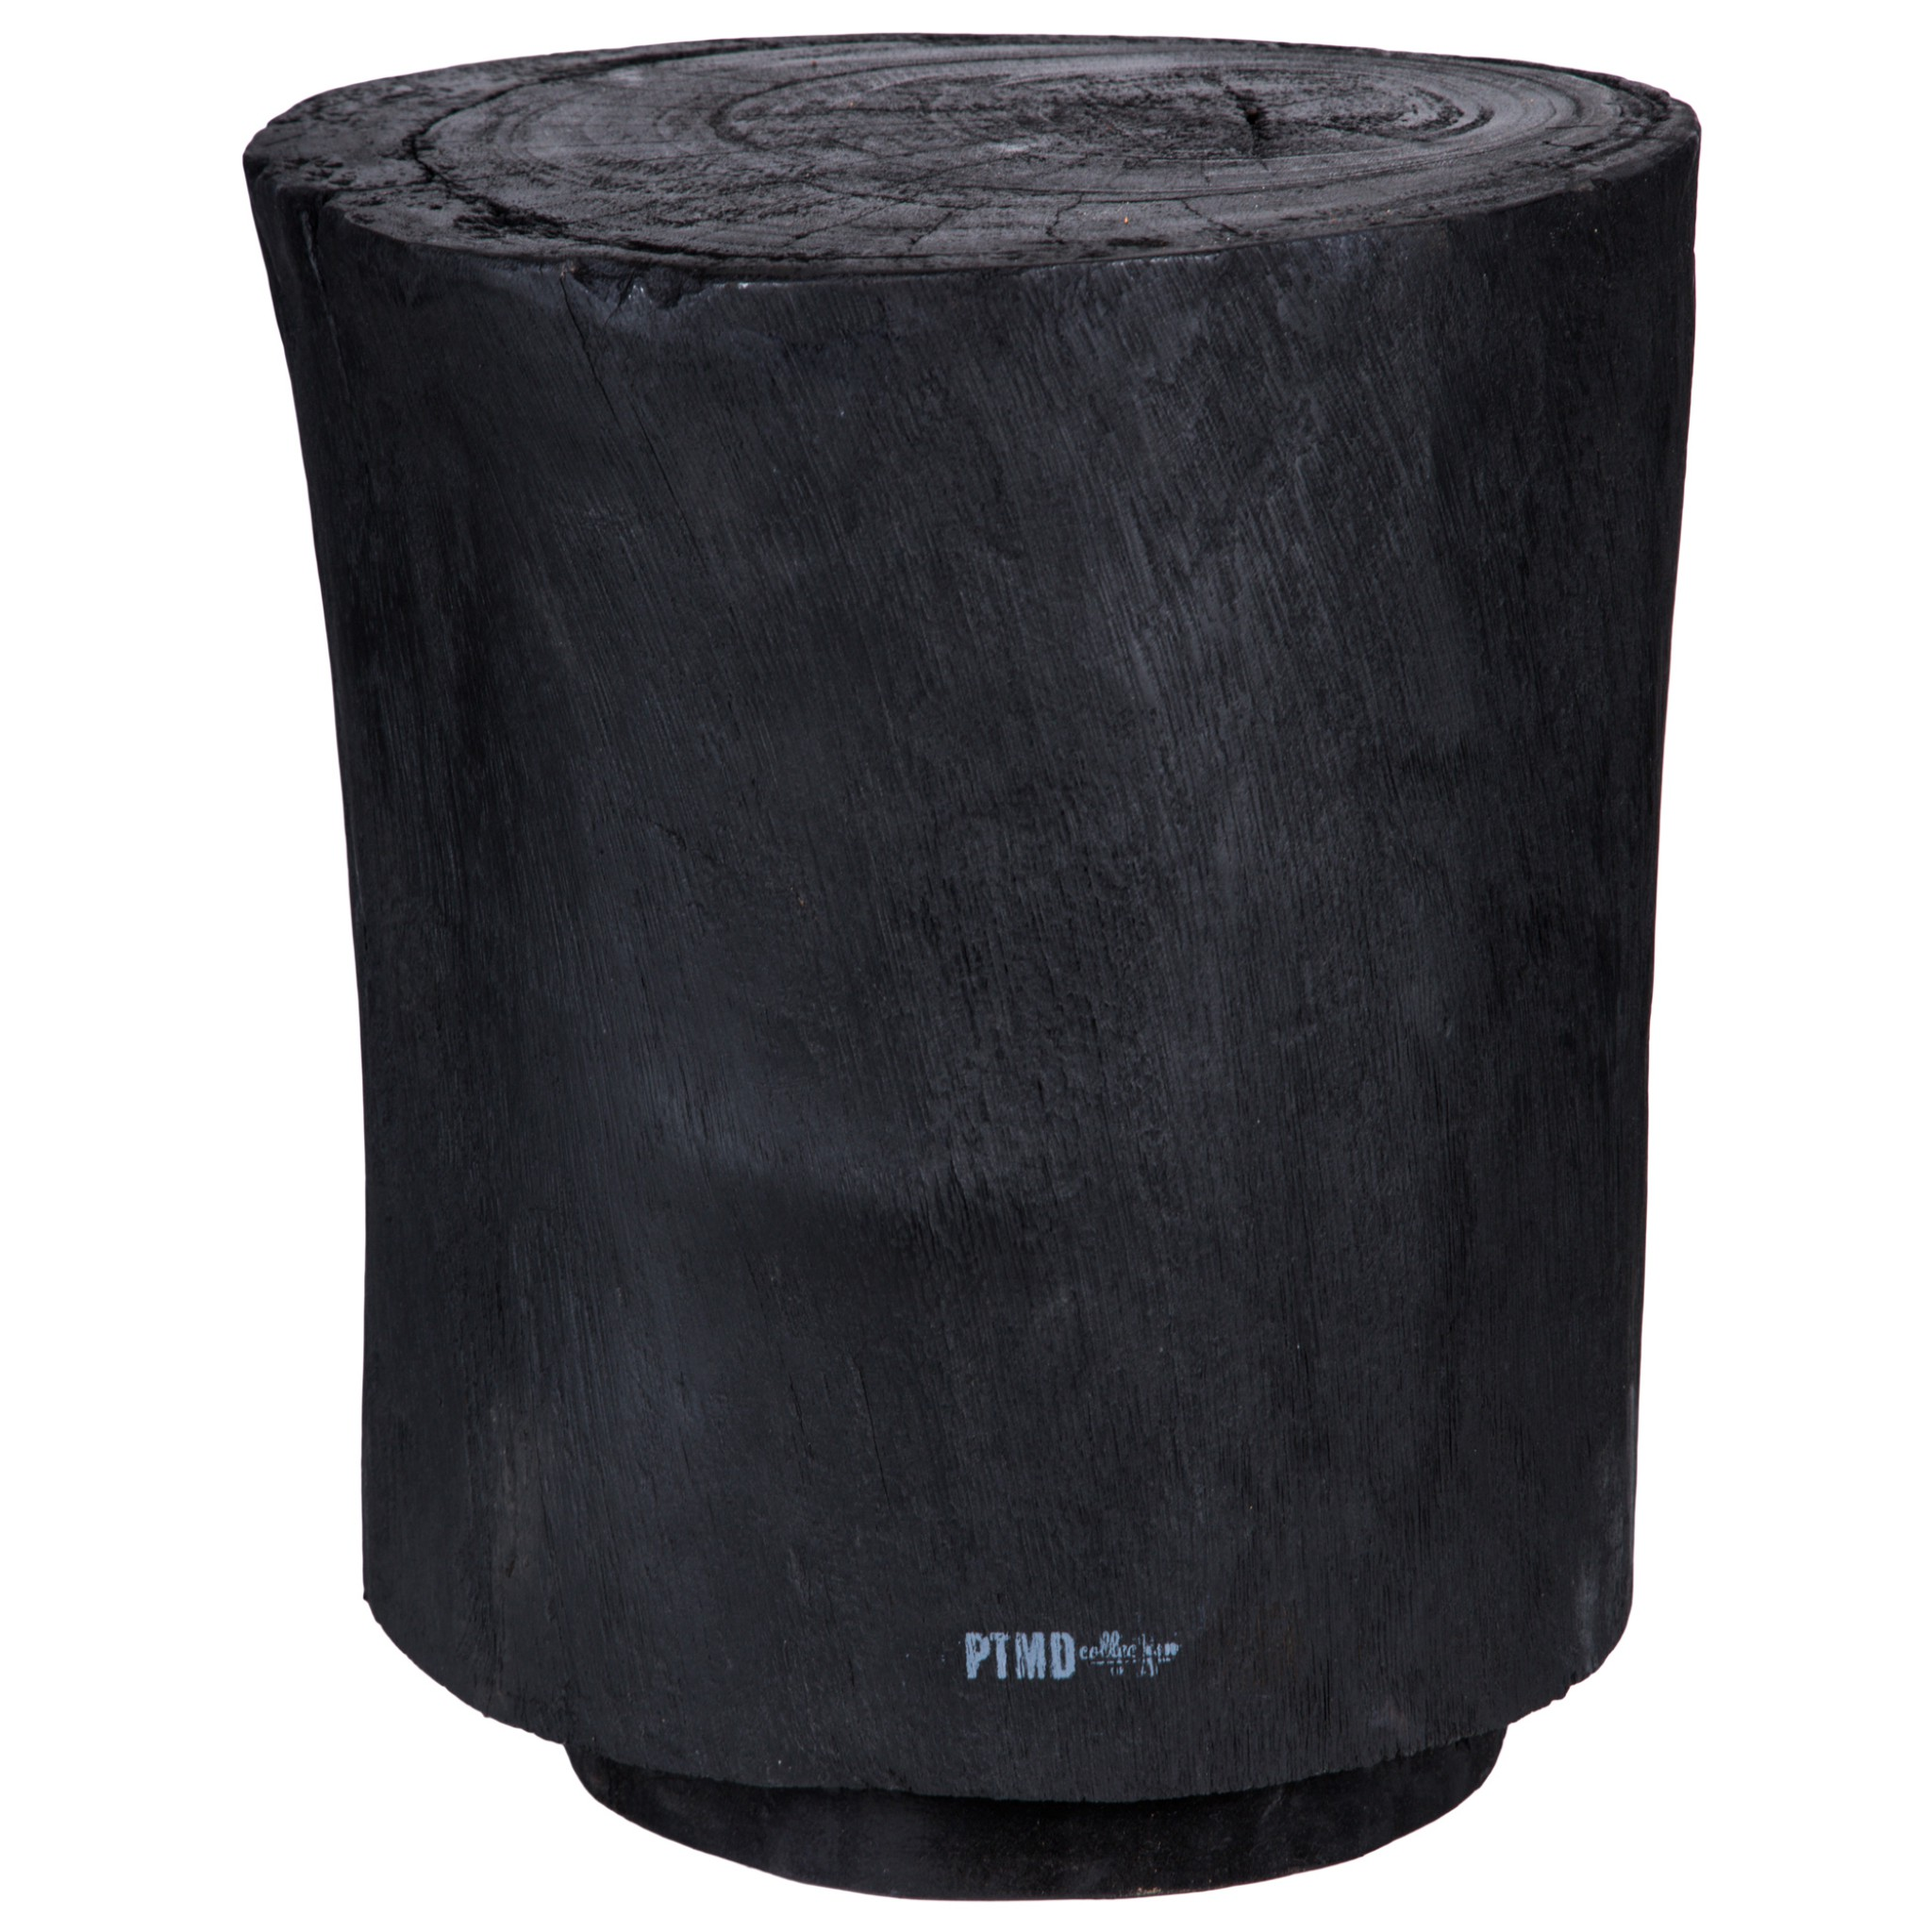 Hocker massiv schwarz-hocker design